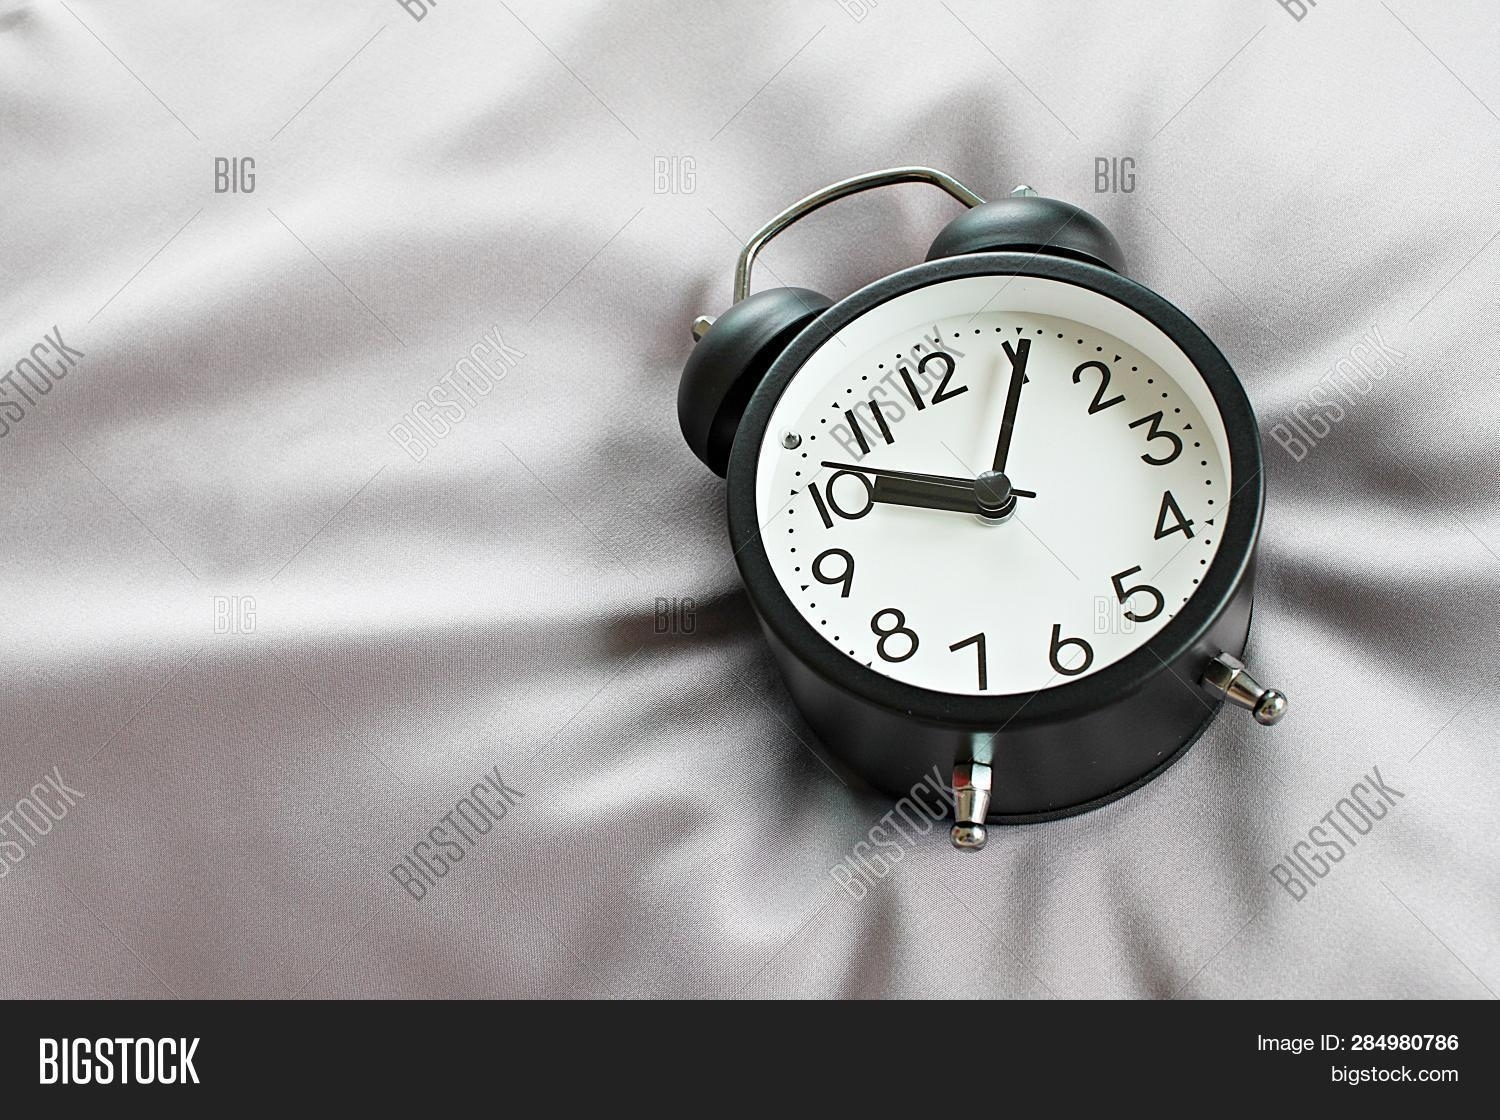 Still Life, Business Image & Photo (Free Trial) | Bigstock Remarkable Countdown Clock Without Weekends And Holidays